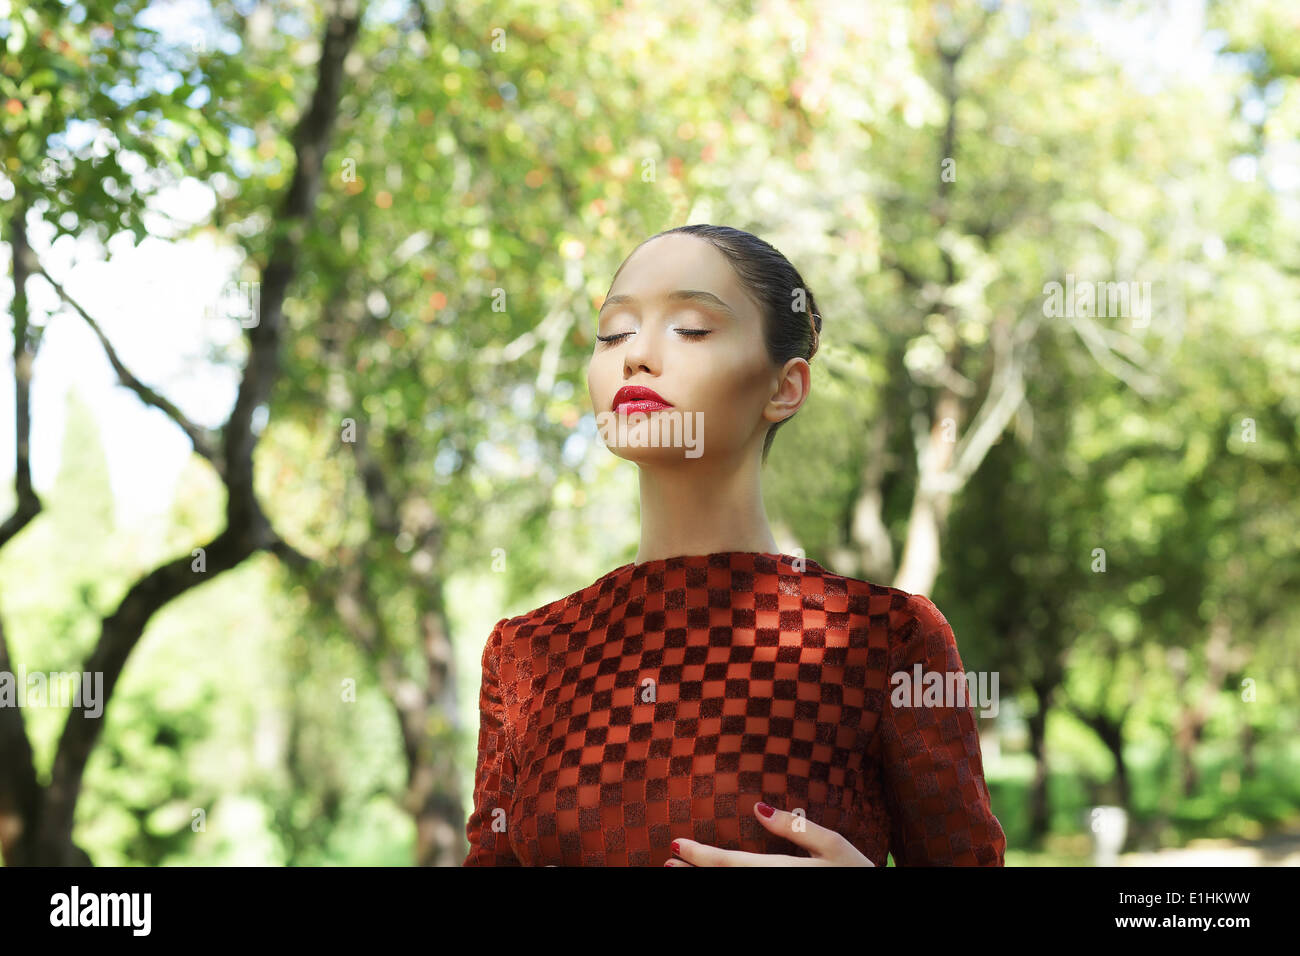 Meditation. Zen-like Asian Woman with Closed Eyes Relaxing Outdoors - Stock Image